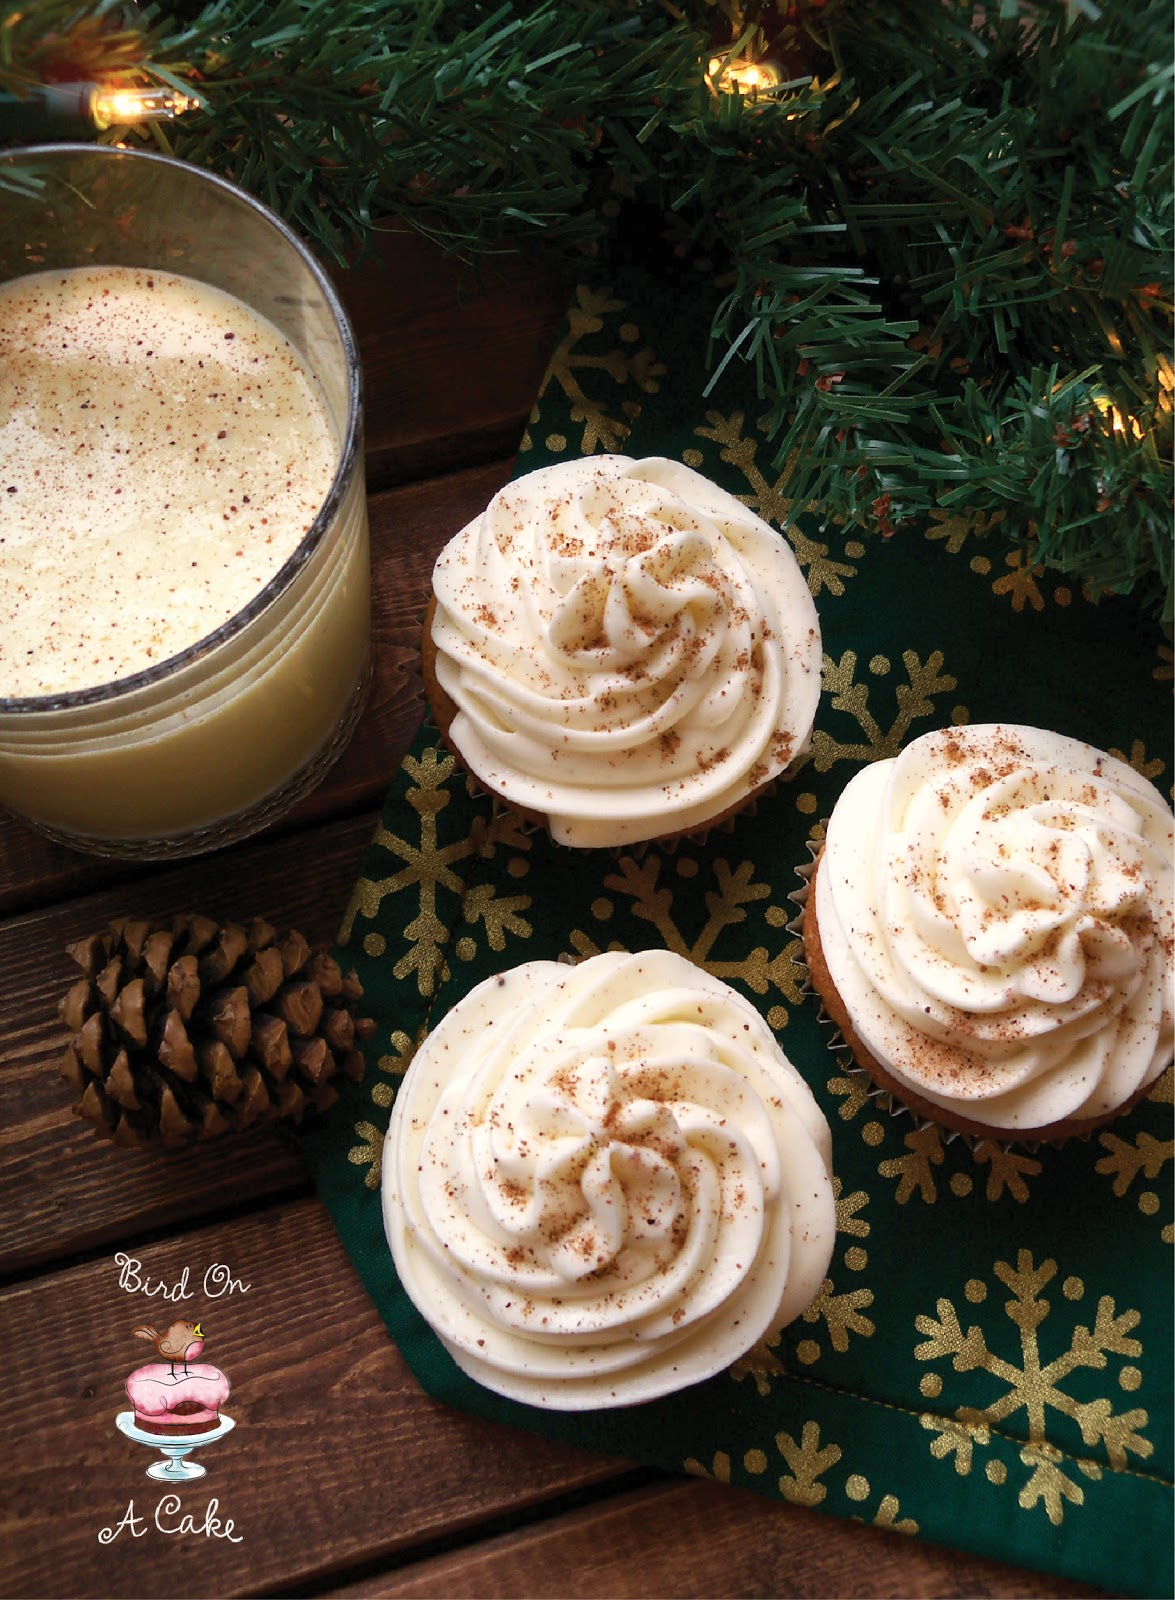 ... in the latter category, these Eggnog Cupcakes with Nutmeg Frosting